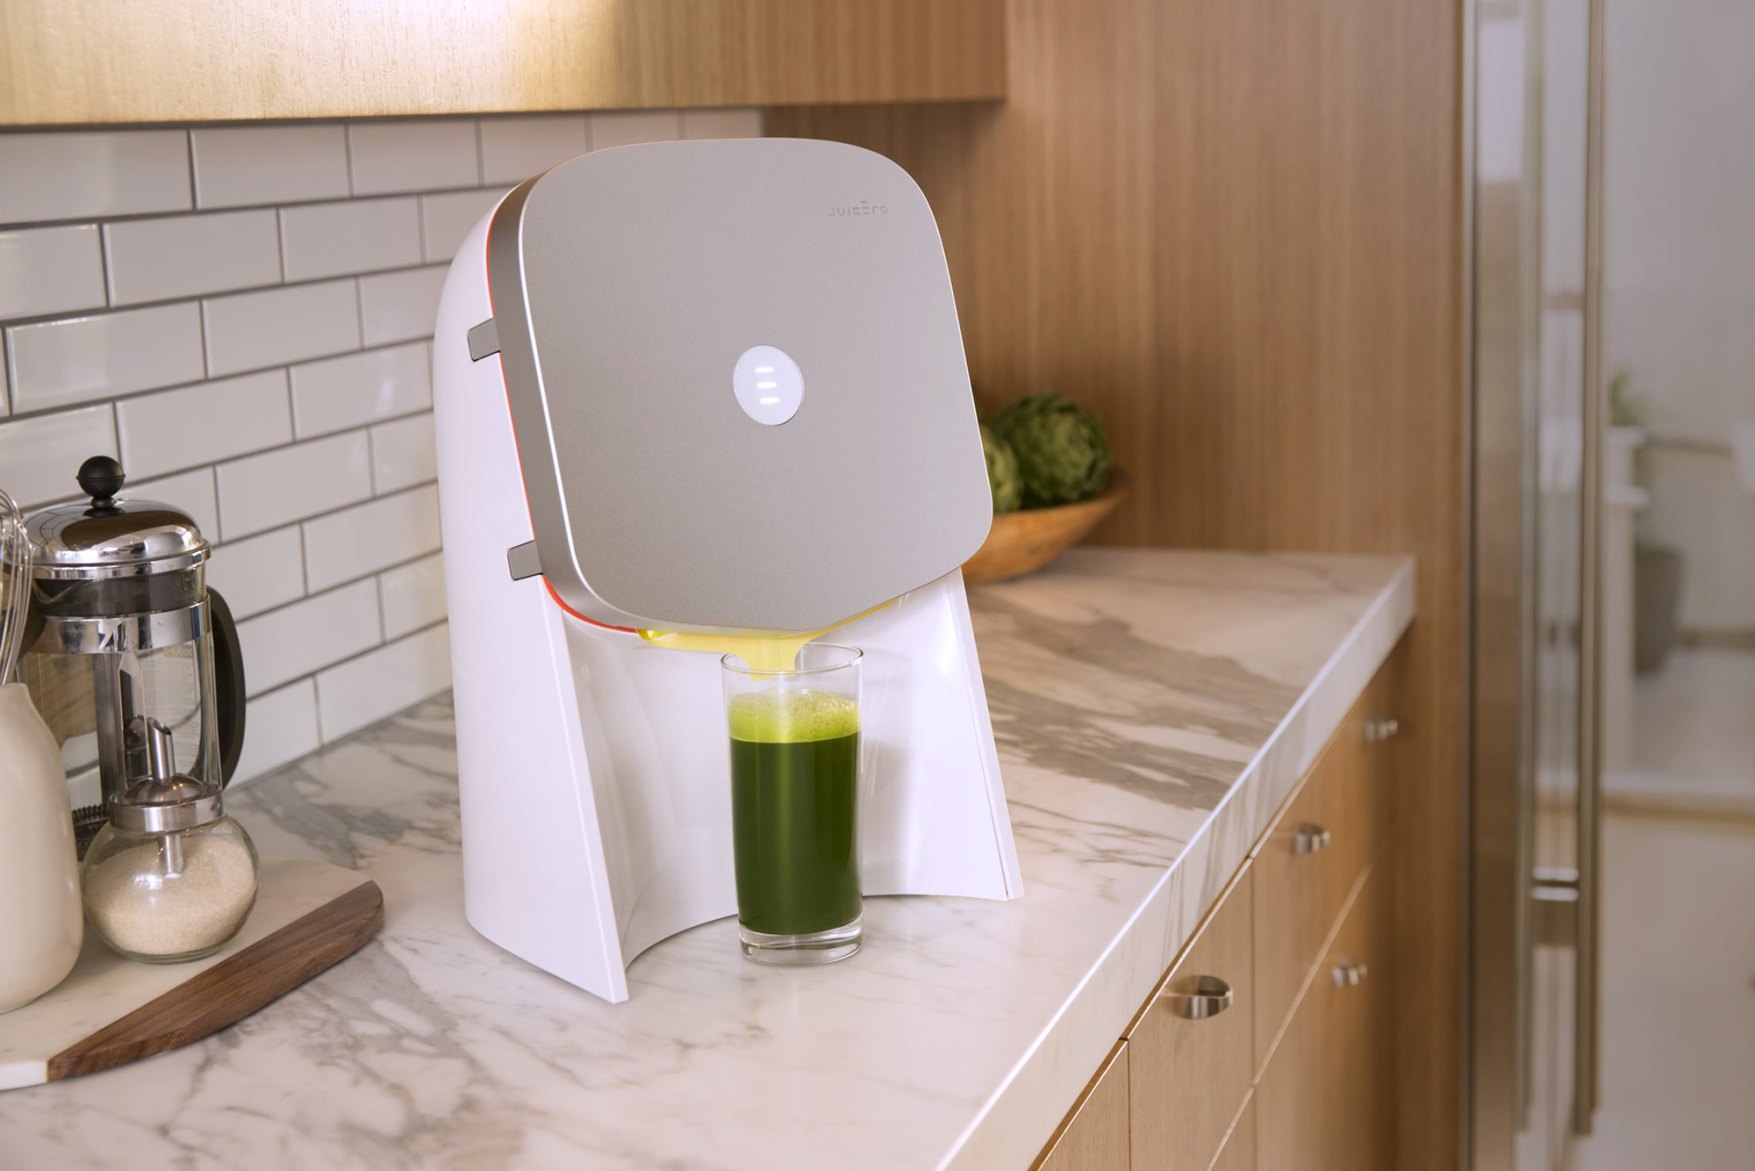 juicero-cold-juice-press-1